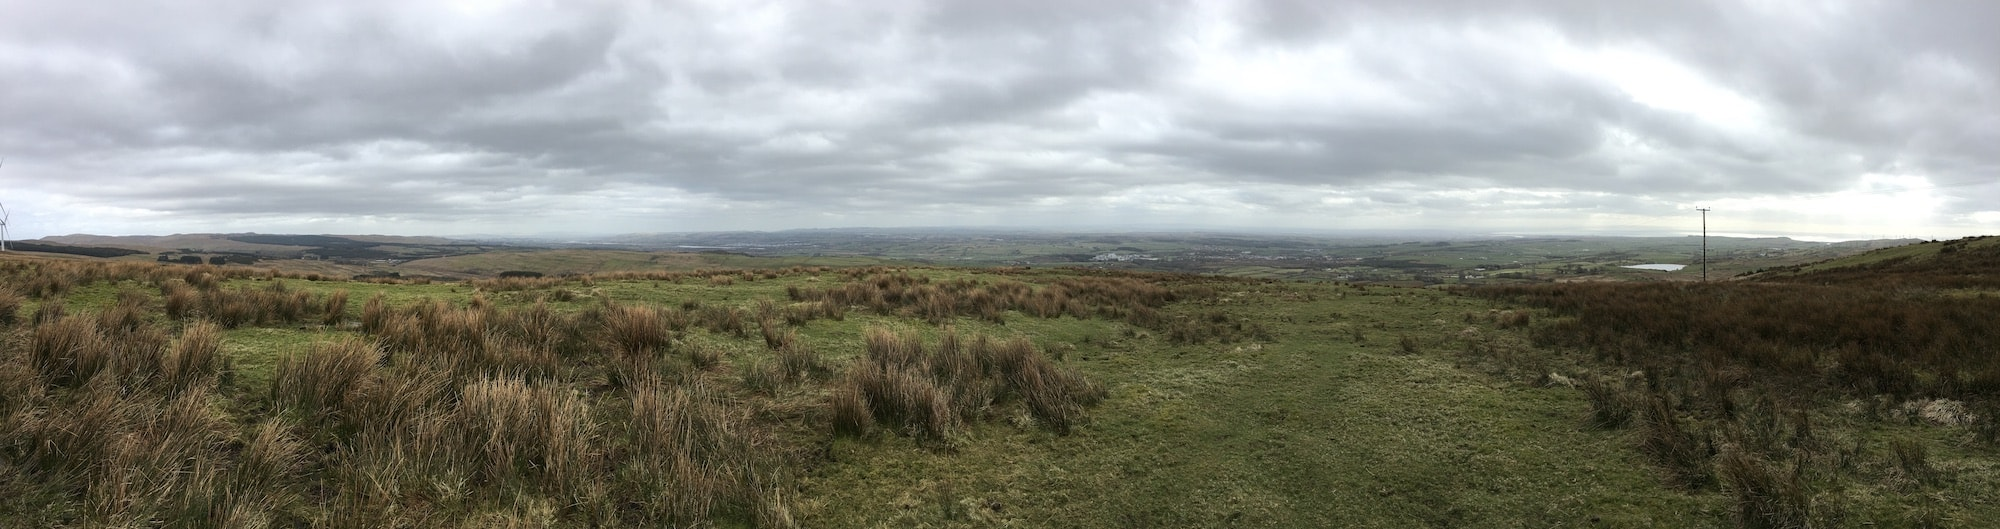 Panoramic photograph of Castle Semple Loch to Irvine Bay viewed from Baidlandhill outside Dalry